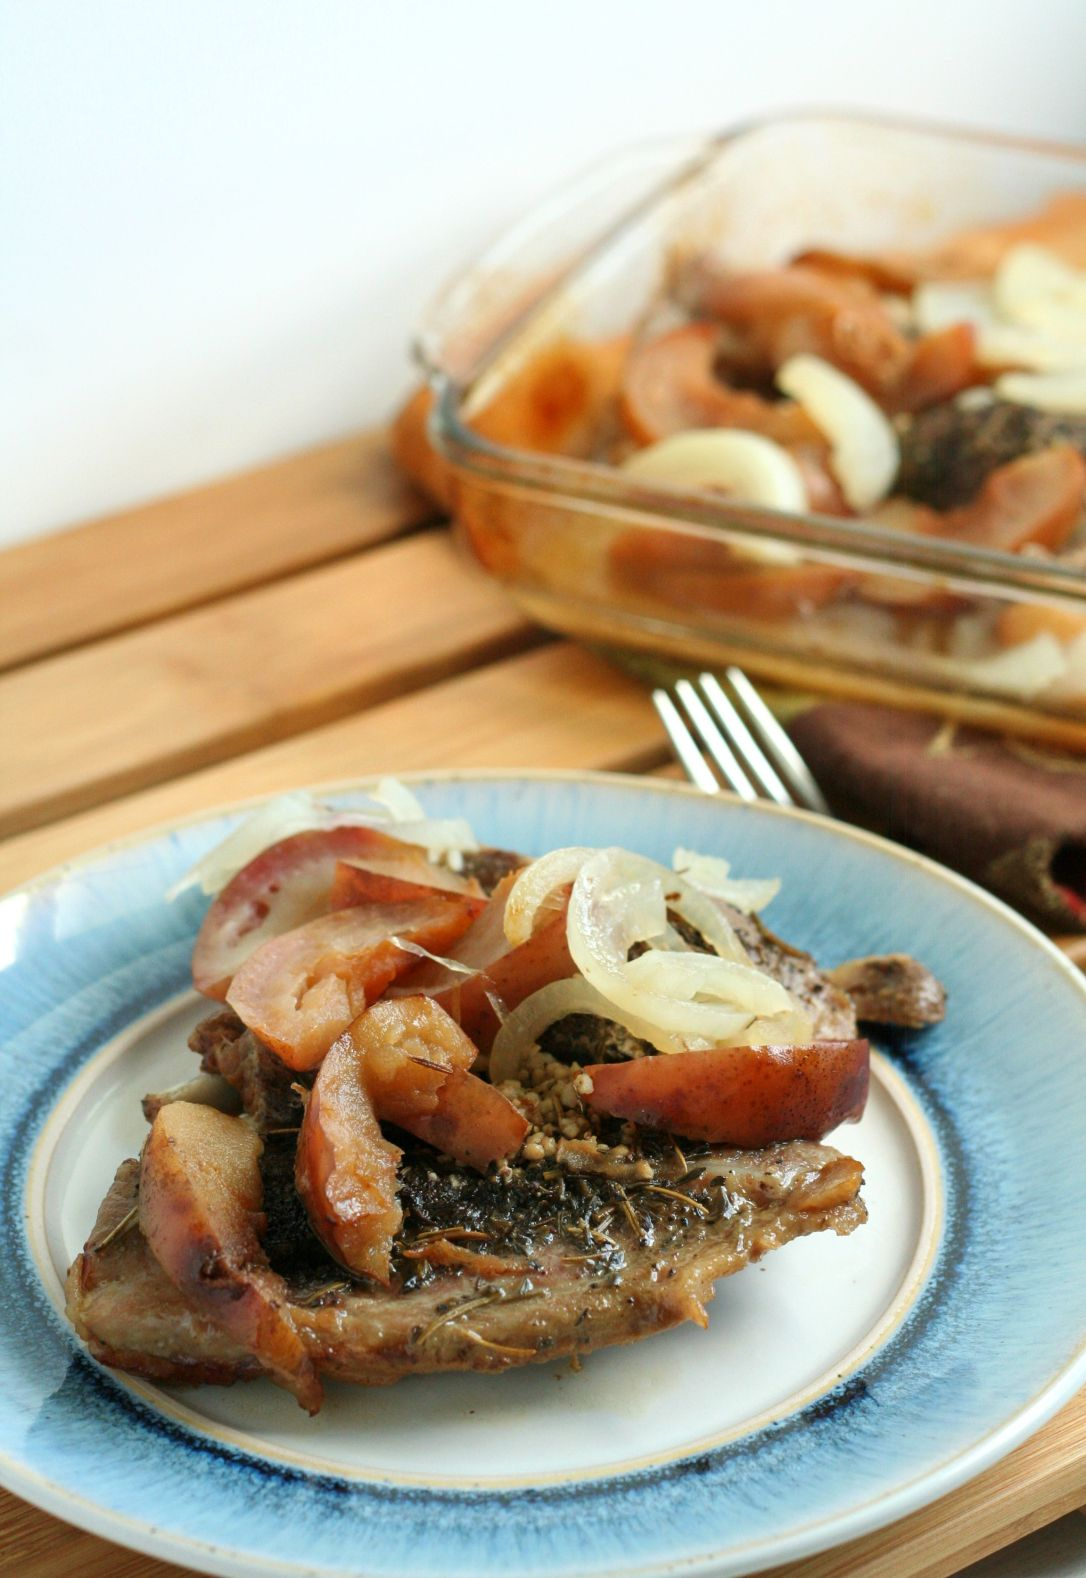 Slow Roasted Apple Pork Chops 2